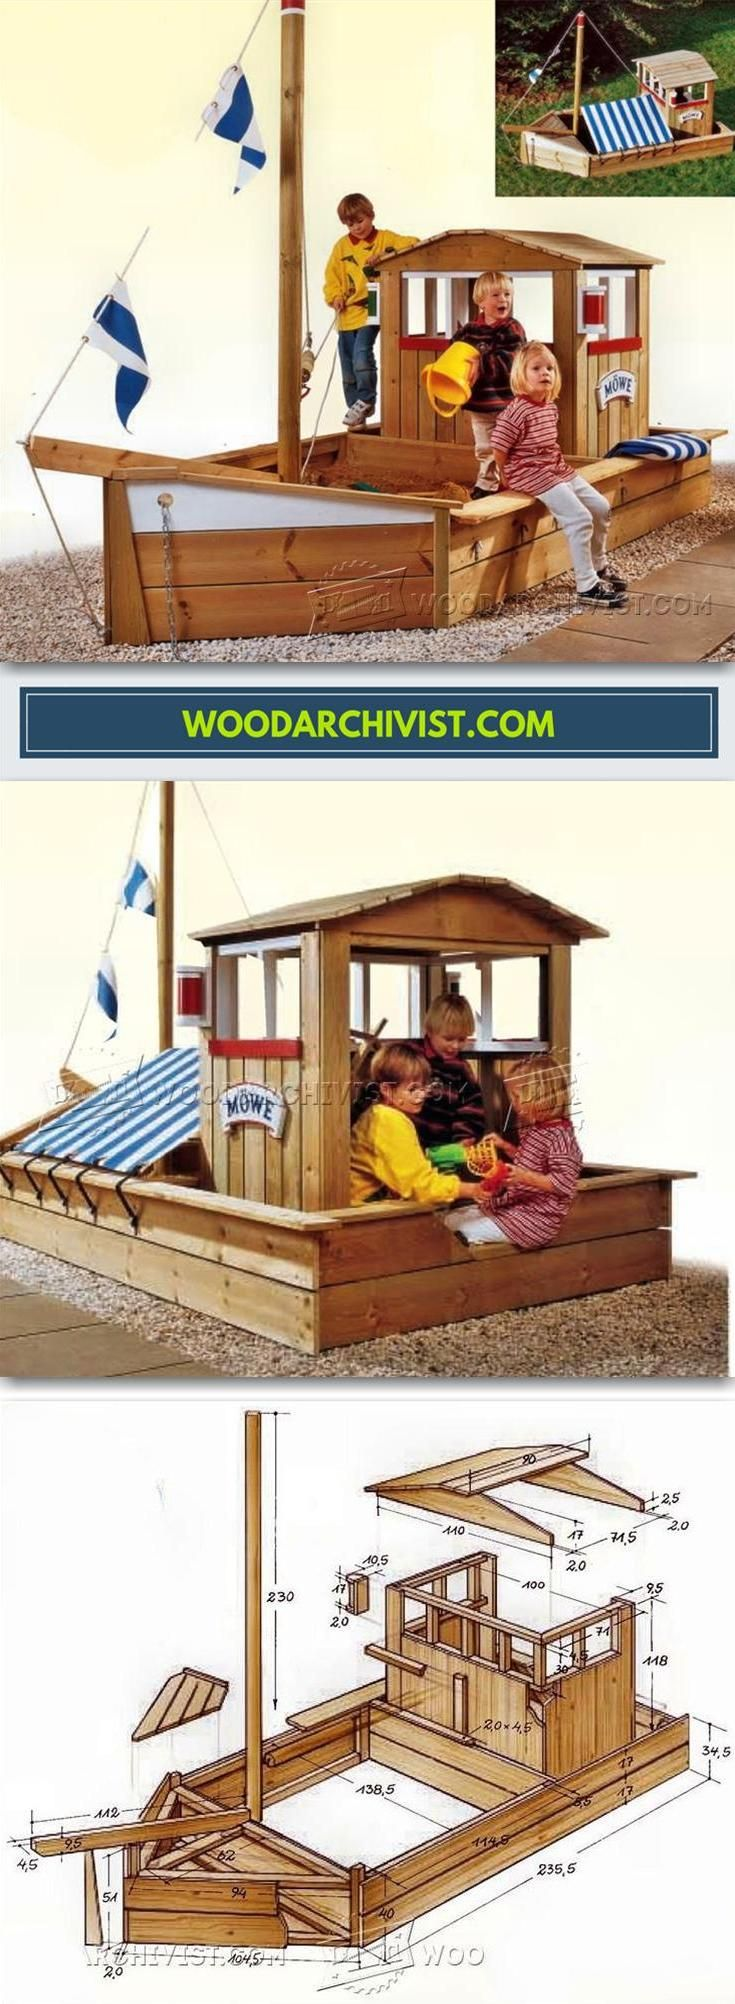 Boat Sandbox Plans - Children's Outdoor Plans and Projects | WoodArchivist.com